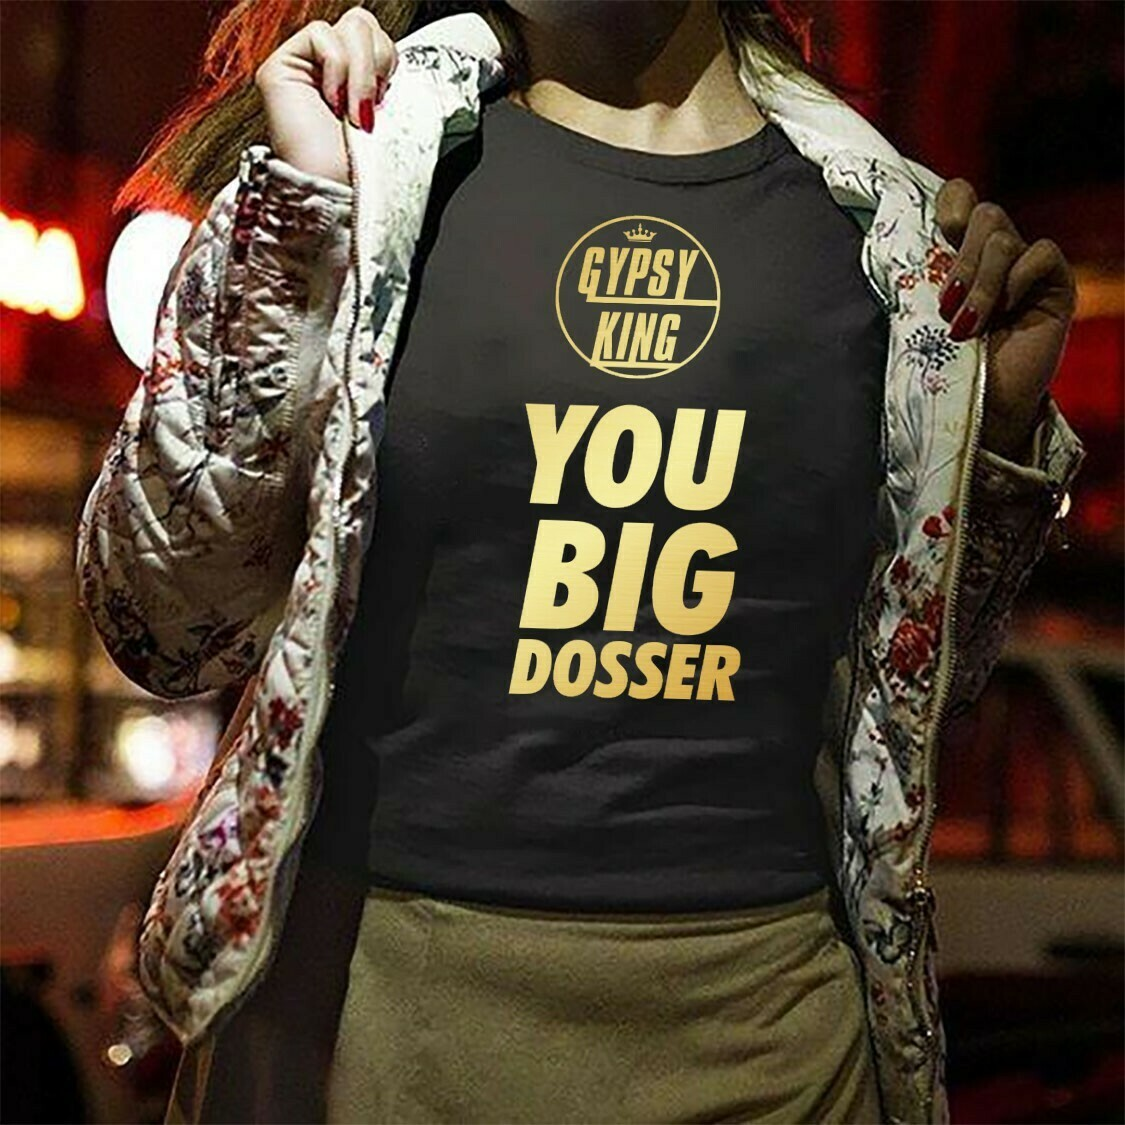 Tyson Fury Gypsy King You Big Dosser Quote Boxer Fury Boxing Sports gift for Men's Boxing T-Shirt Hoodie Sweatshirt Sweater Tee Kids Youth Gifts Jolly Family Gifts